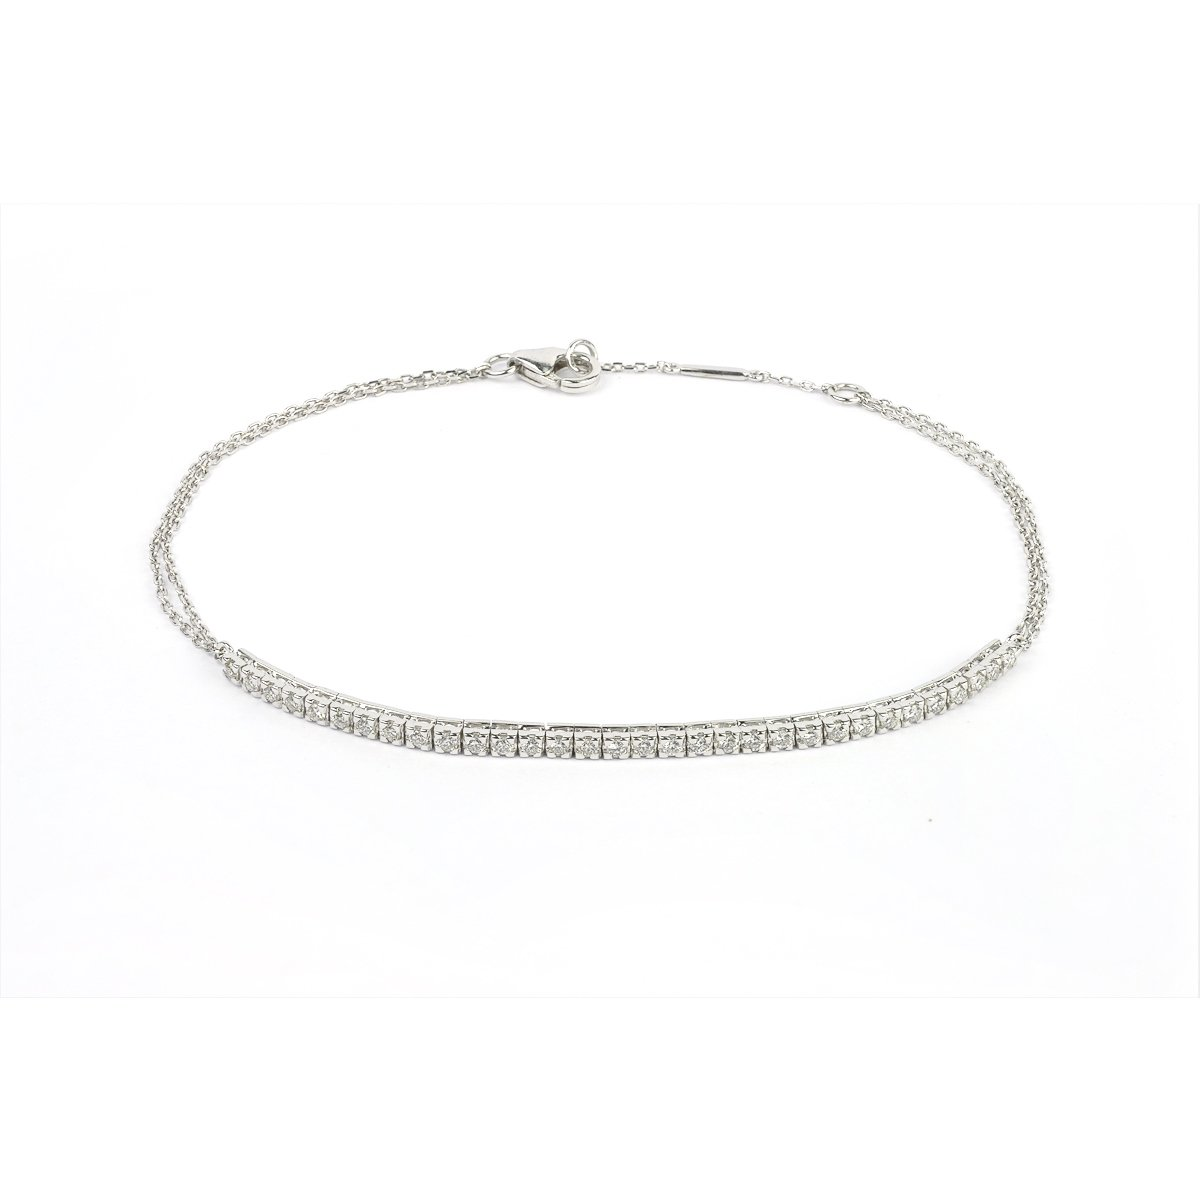 Bracelet en or blanc et diamants de 0.33ct